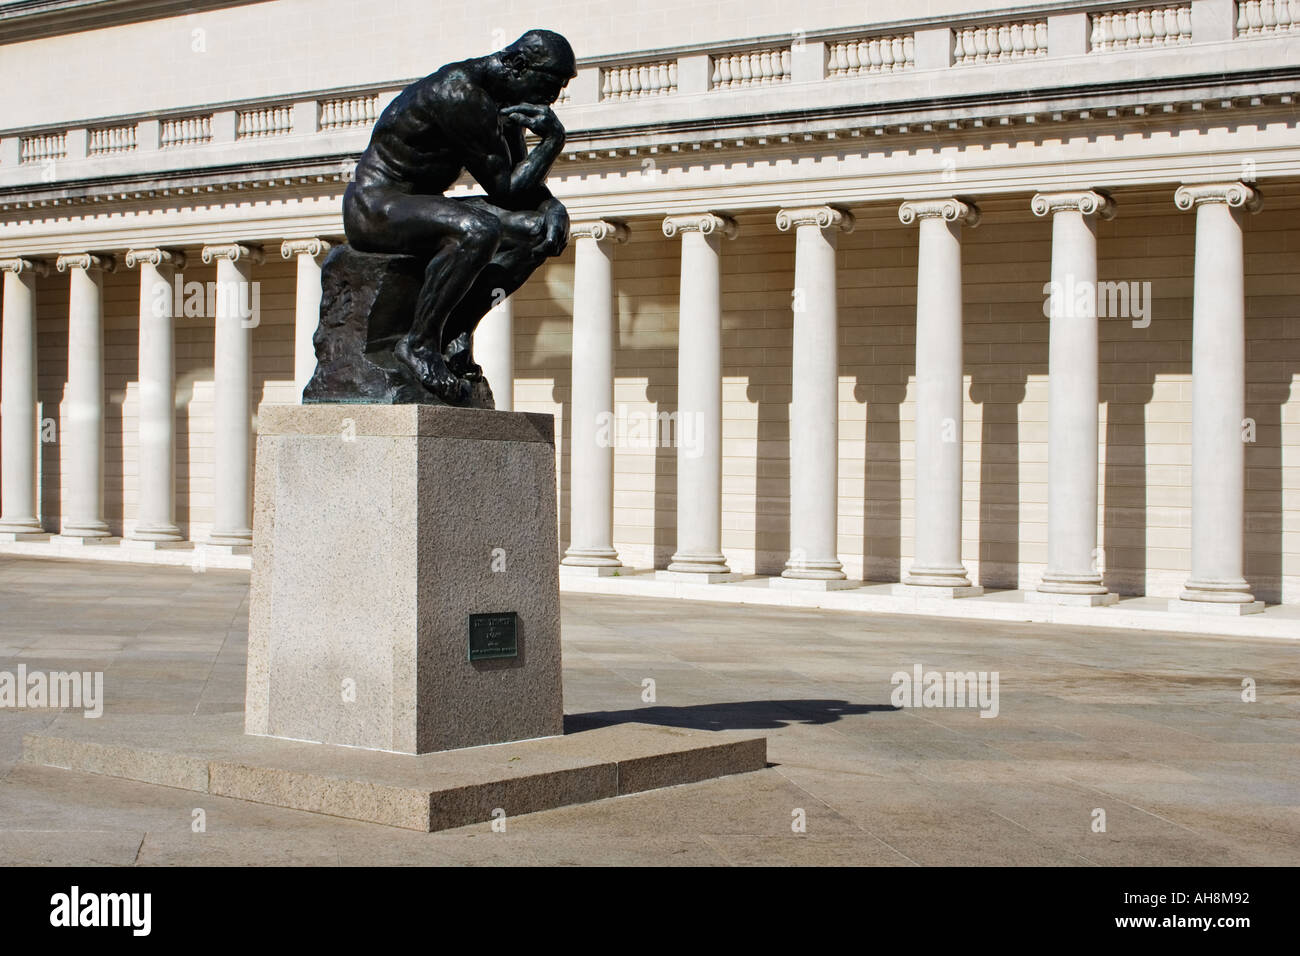 Auguste Rodin s The Thinker in the courtyard at the California Palace of the Legion of Honor in Lincoln park California. - Stock Image